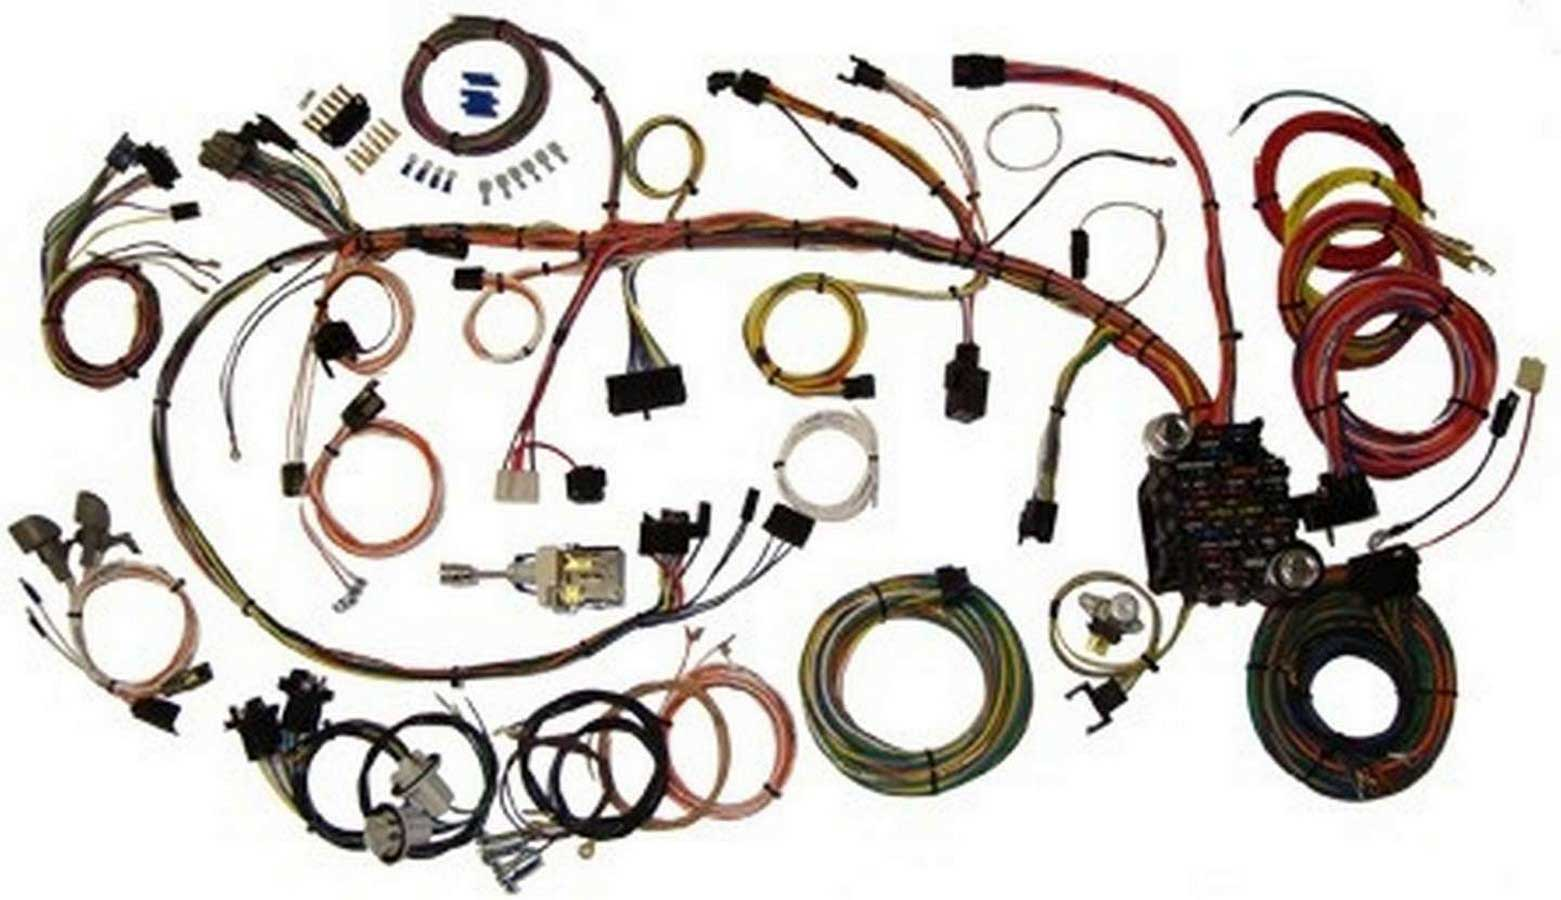 79 camaro wiring harness welcome to lane automotive supplier of racing high performance catalog links 1976 camaro parts electrical and wiring